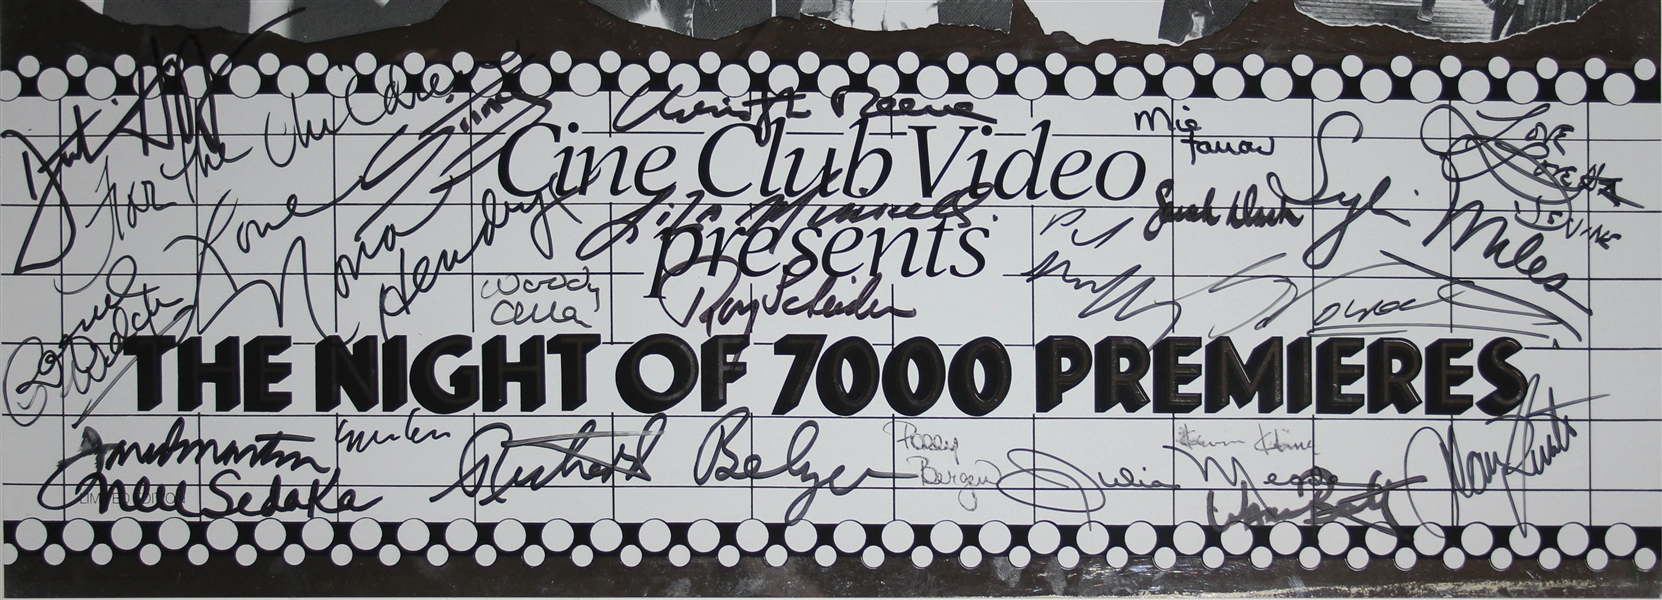 Star Studded Signed Movie Premiere Poster -- Signed by Christopher Reeve, Warren Beatty, Sting, Yoko Ono, Woody Allen, Mia Farrow, Liza Minelli, Dustin Hoffman & More